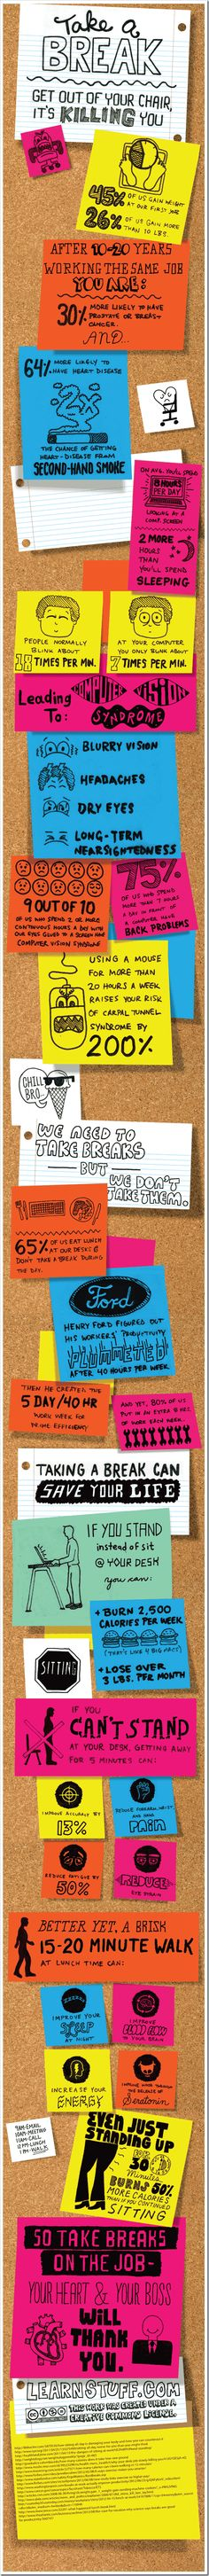 Take a Break at your Work, It's a Life-saver [Infographic]